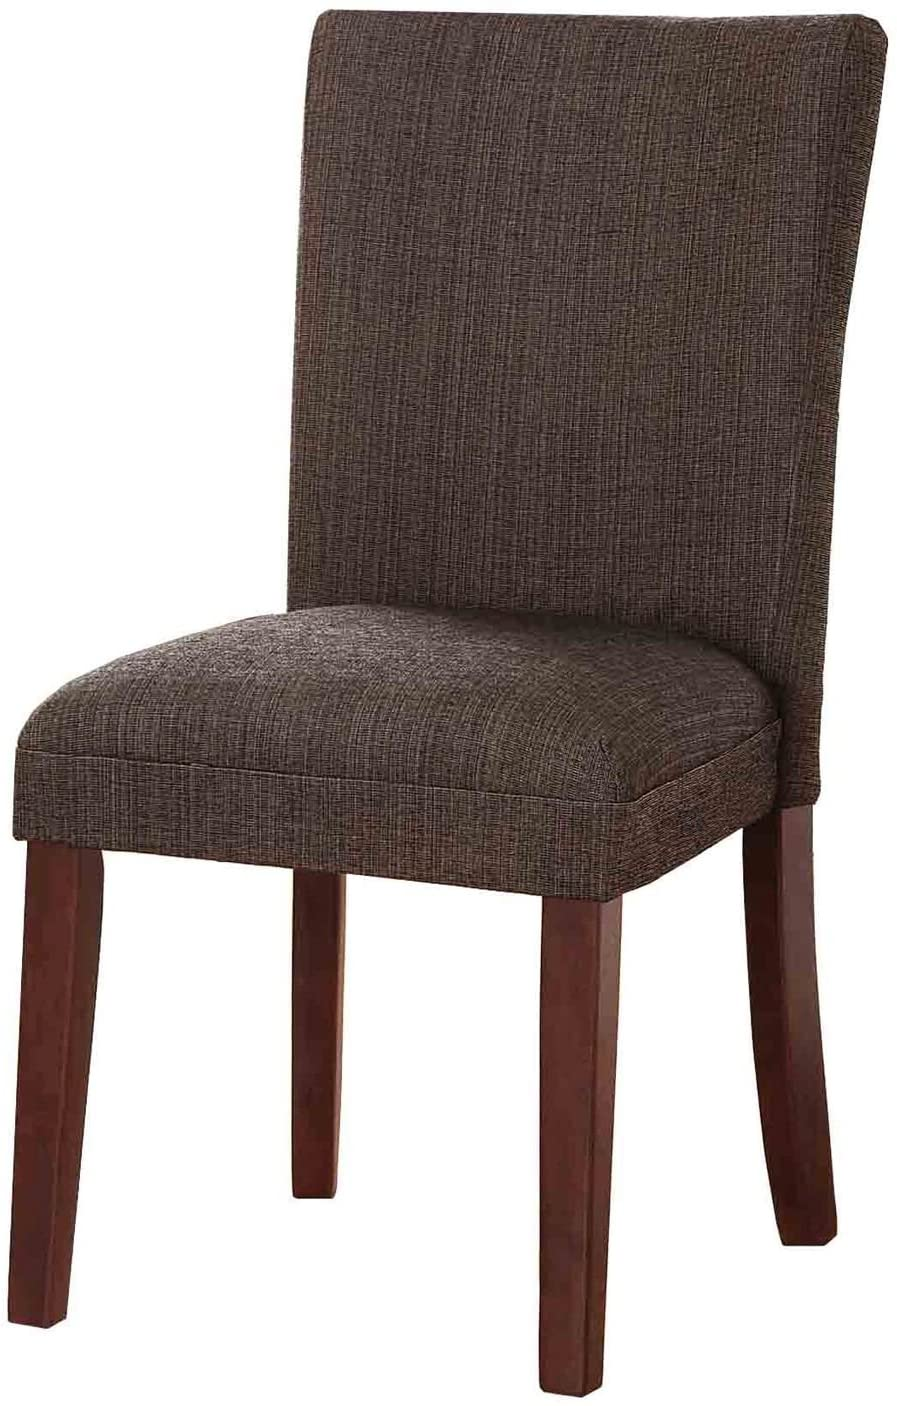 HomePop Parsons Classic Upholstered Accent Dining Chair,Single Pack, Textured Brown